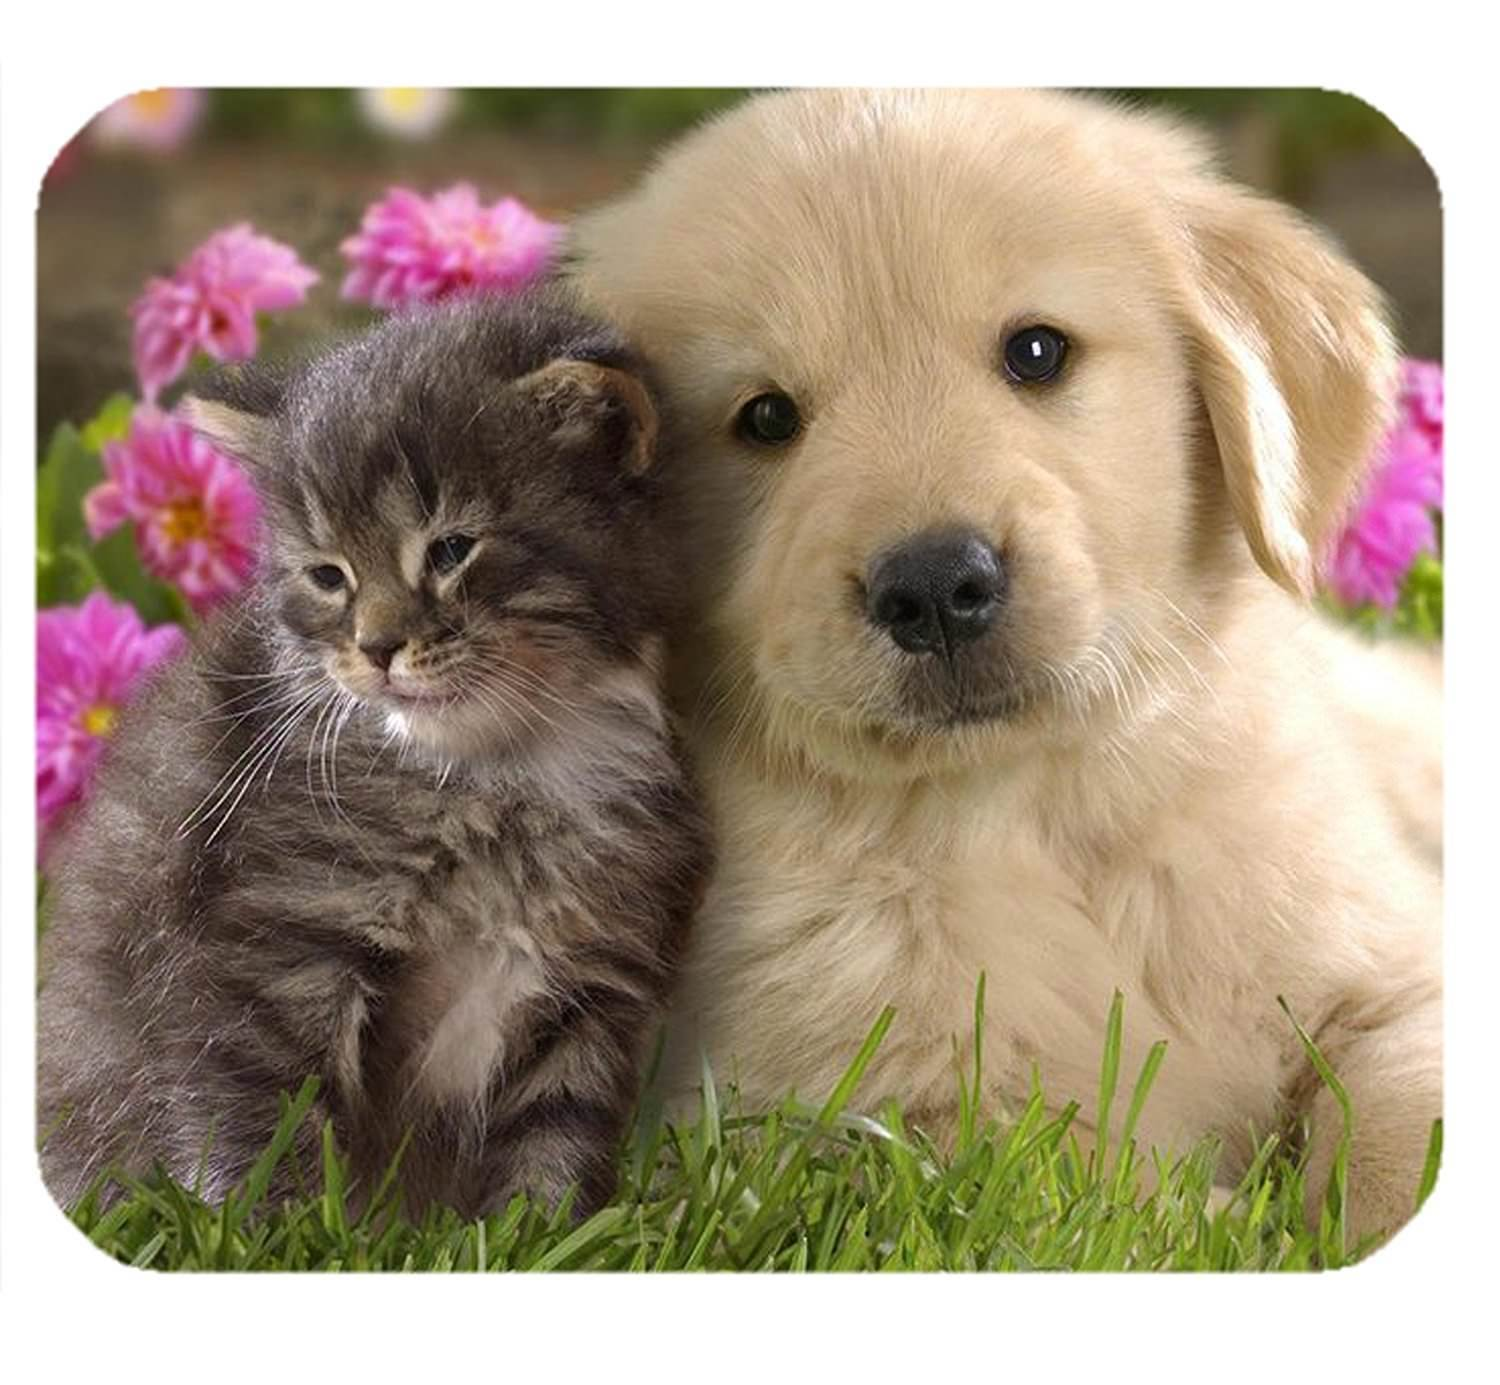 Mouse Mat 122 Mouse Pad Animals Cat Kitten Dog Golden Retriever Puppy Cute Cats And Dogs Cute Animal Videos Kittens Cutest